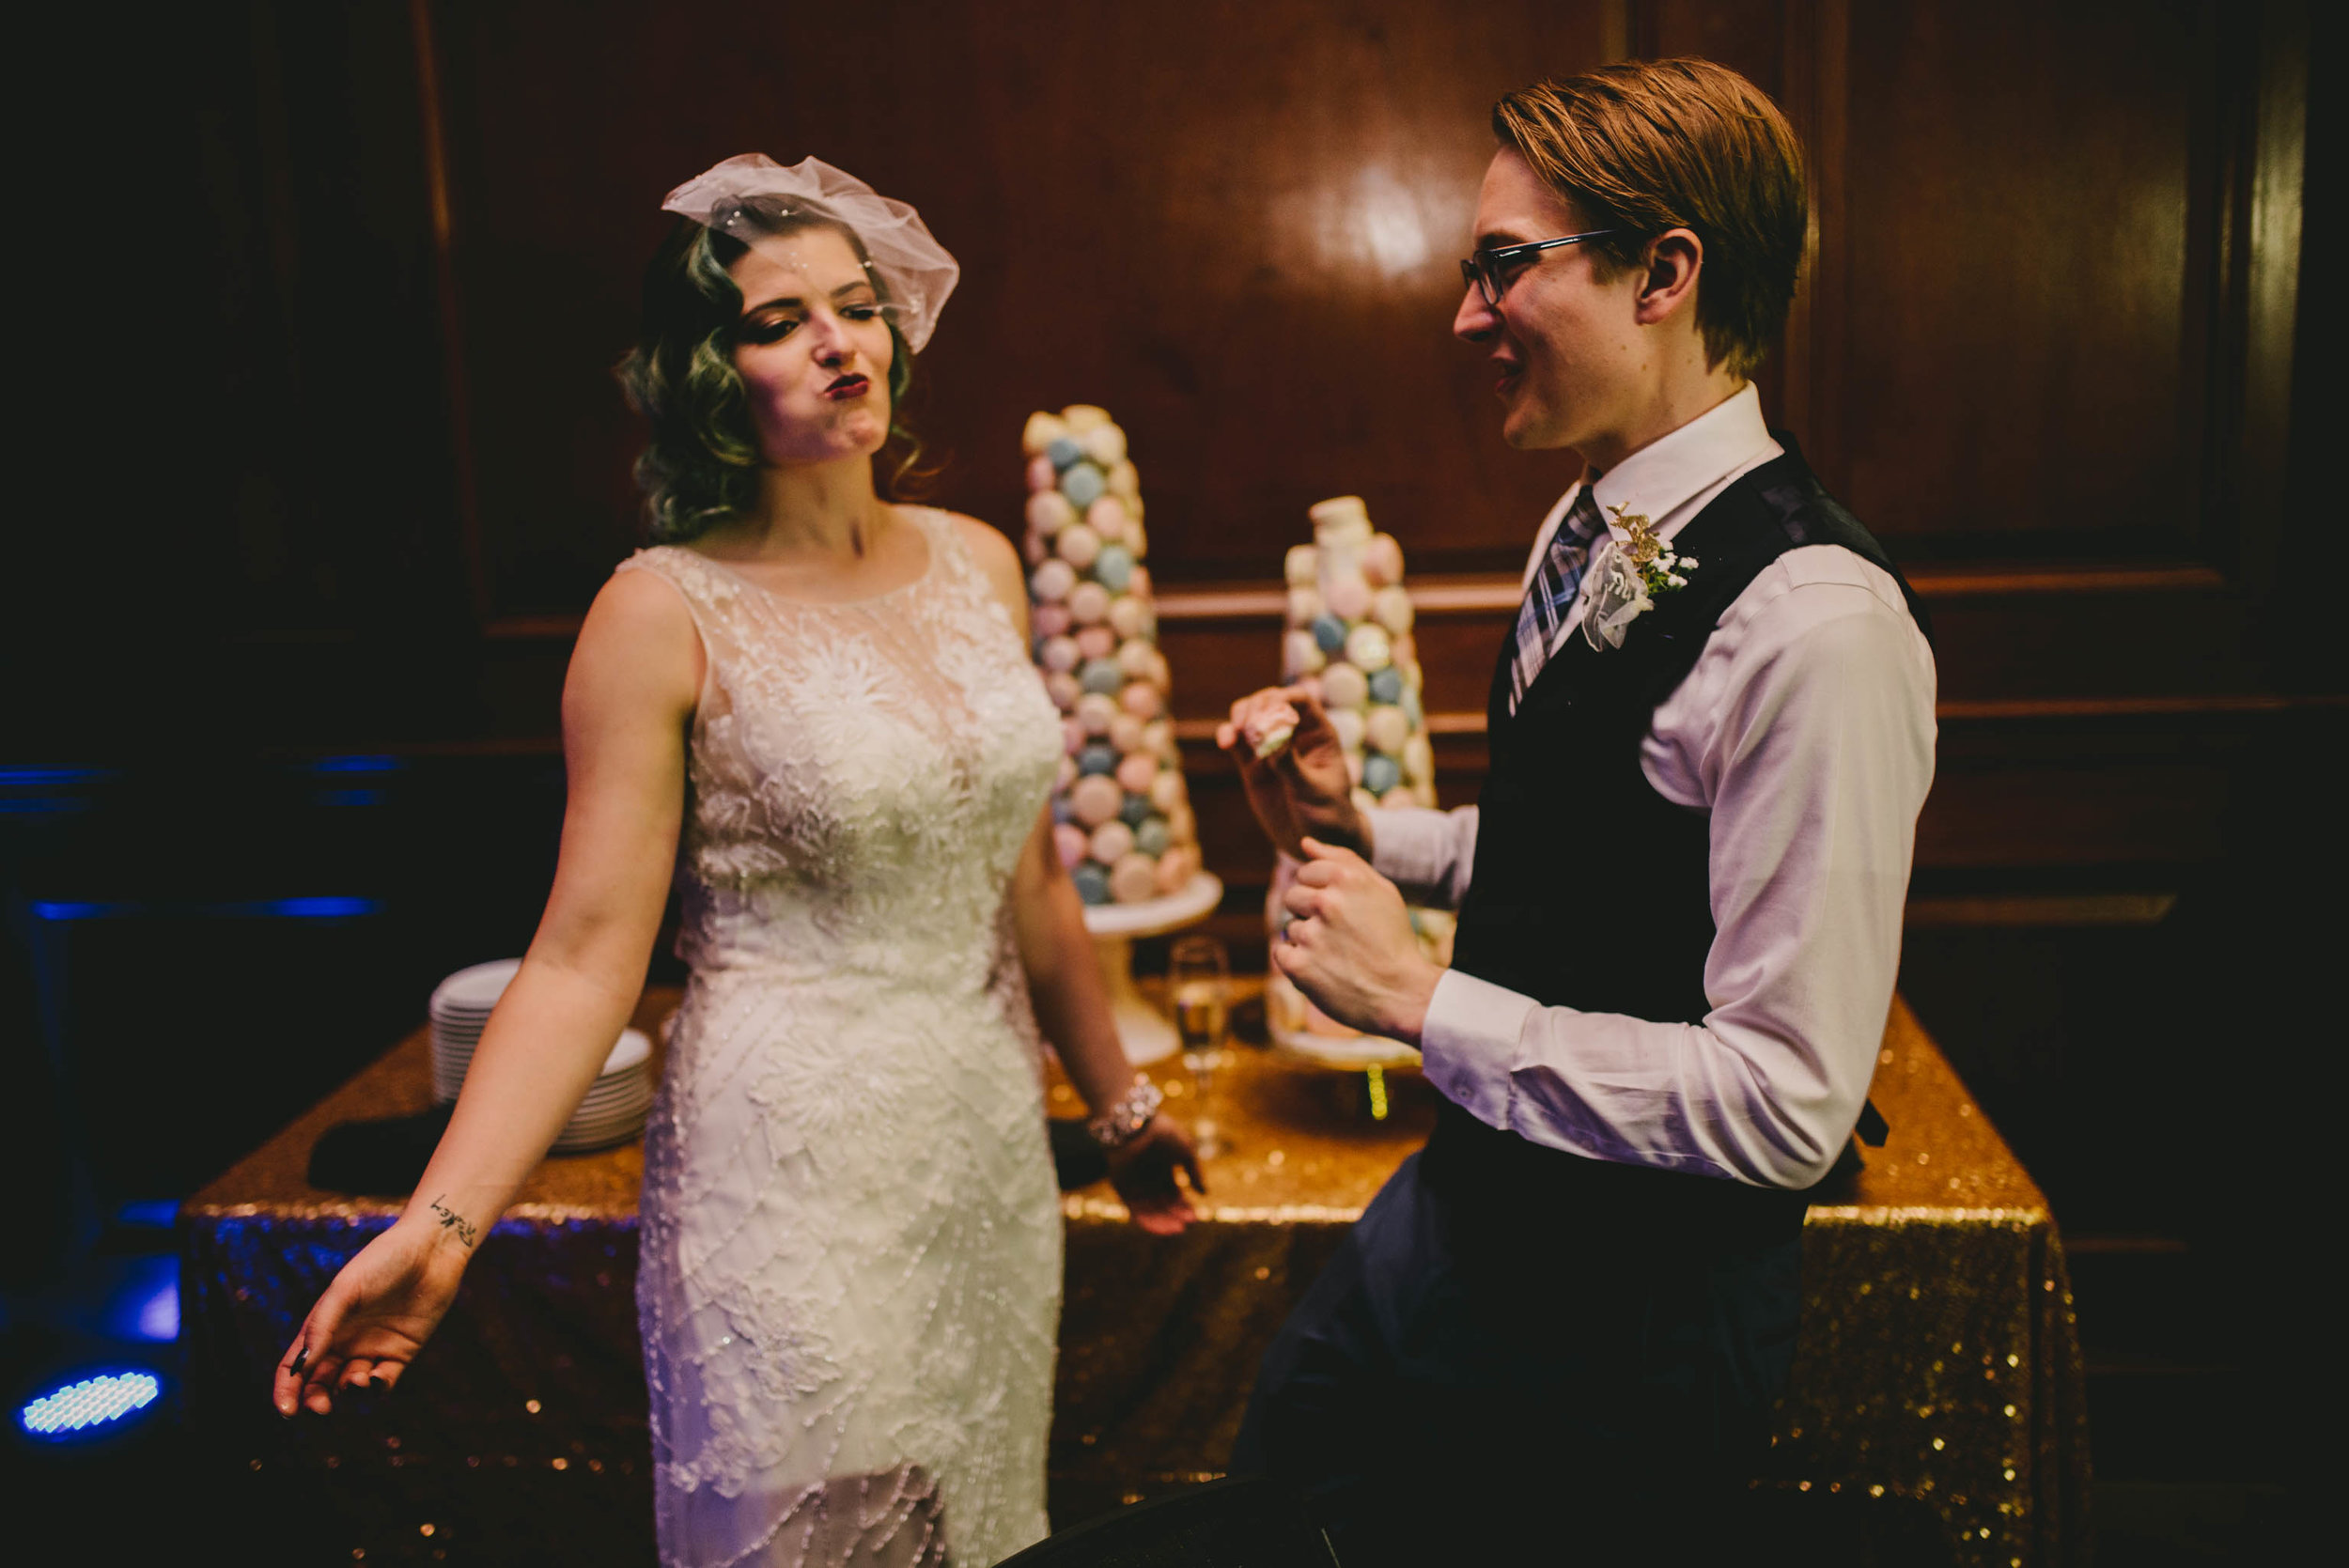 21c-hotel-durham-offbeat-wedding-macaron-cake-cutting.jpg